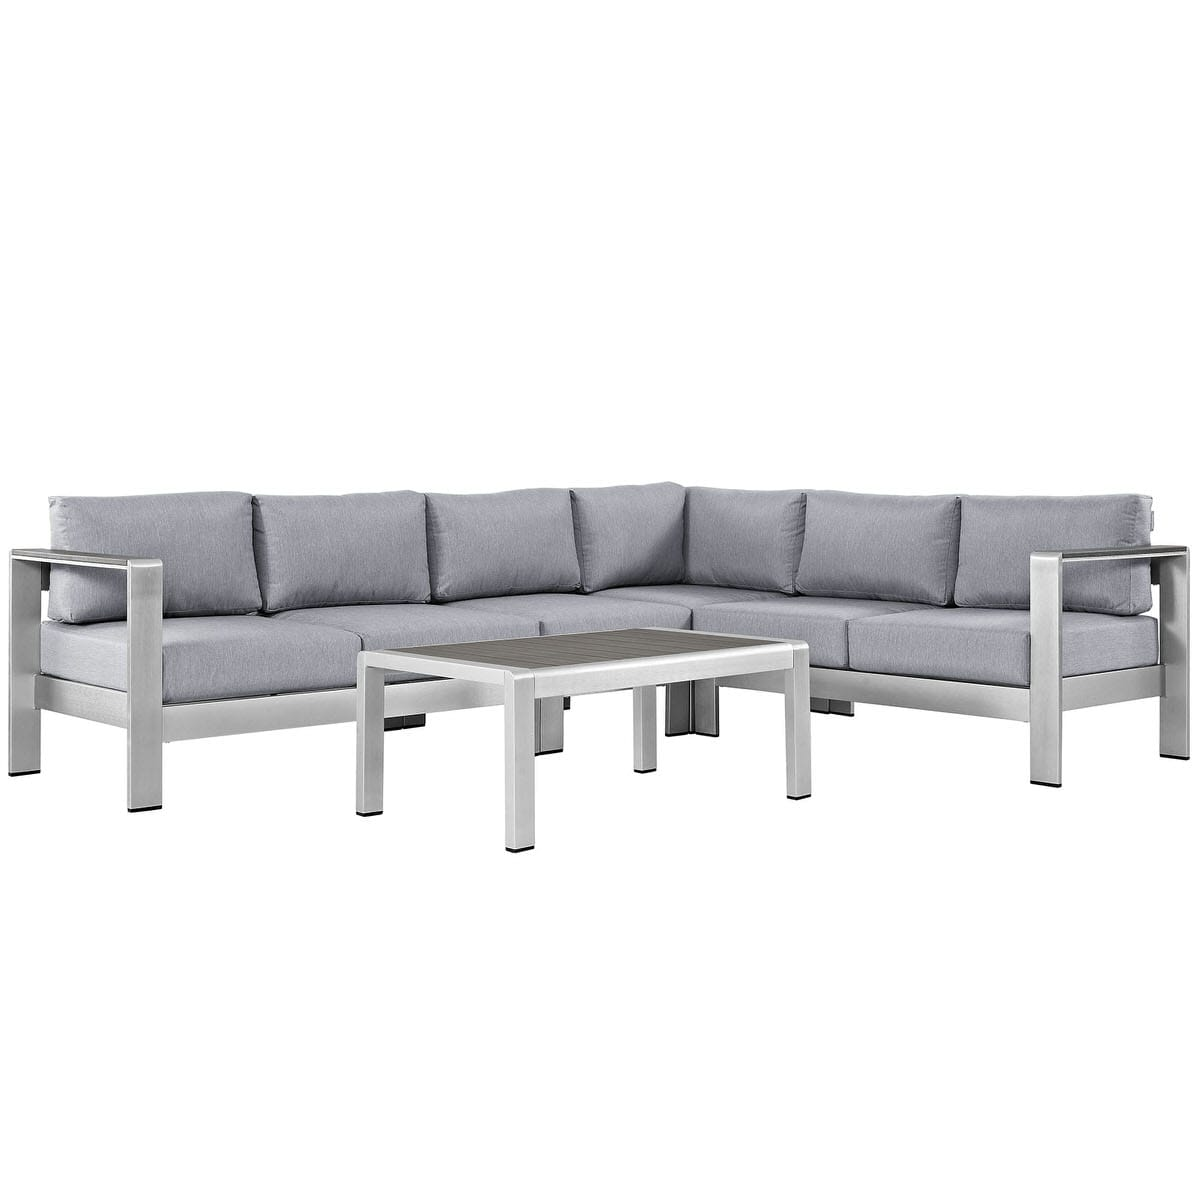 Superb Shore 5 Piece Outdoor Patio Aluminum Sectional Sofa Set Silver Gray By Modern Living Caraccident5 Cool Chair Designs And Ideas Caraccident5Info